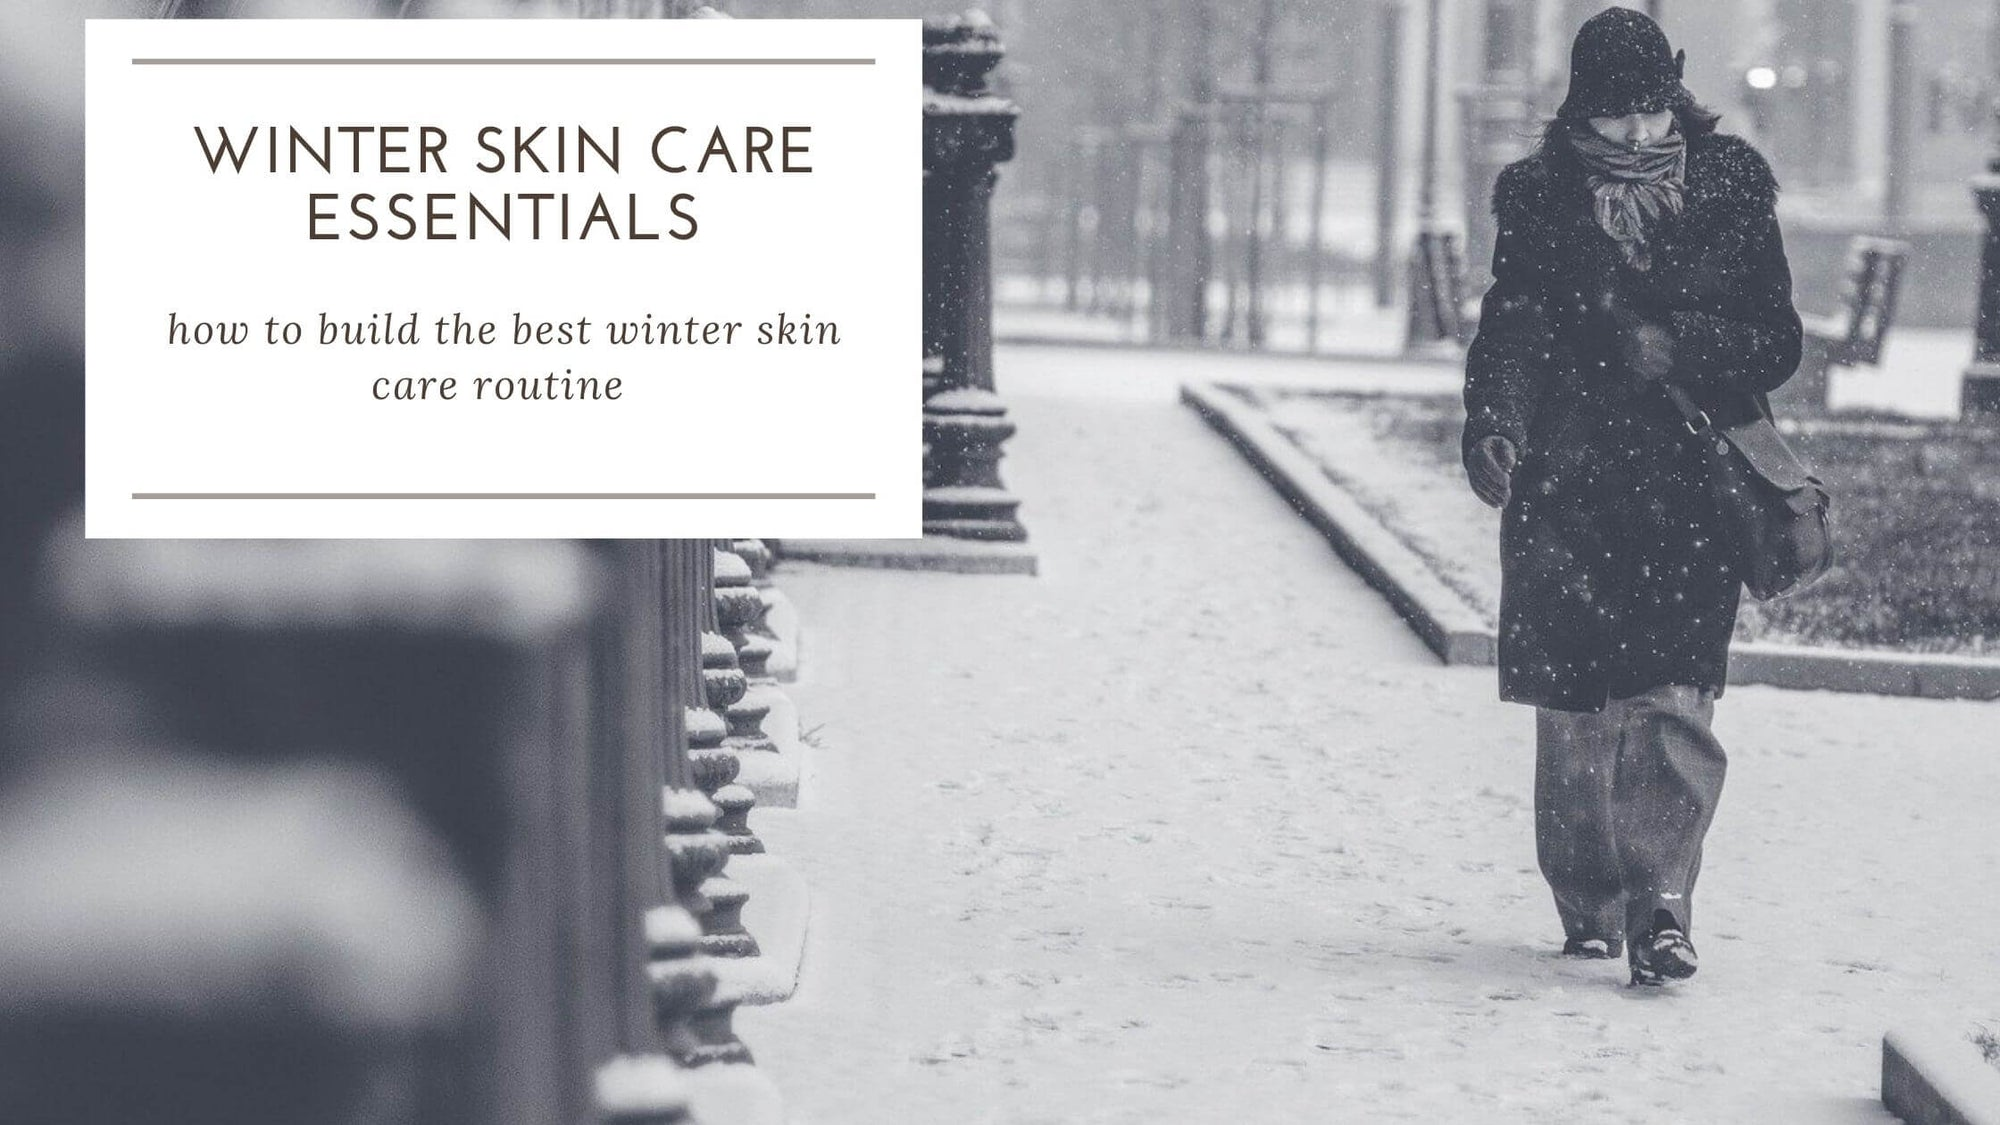 9 Winter Skin Care Essentials For Dry Skin in 2021